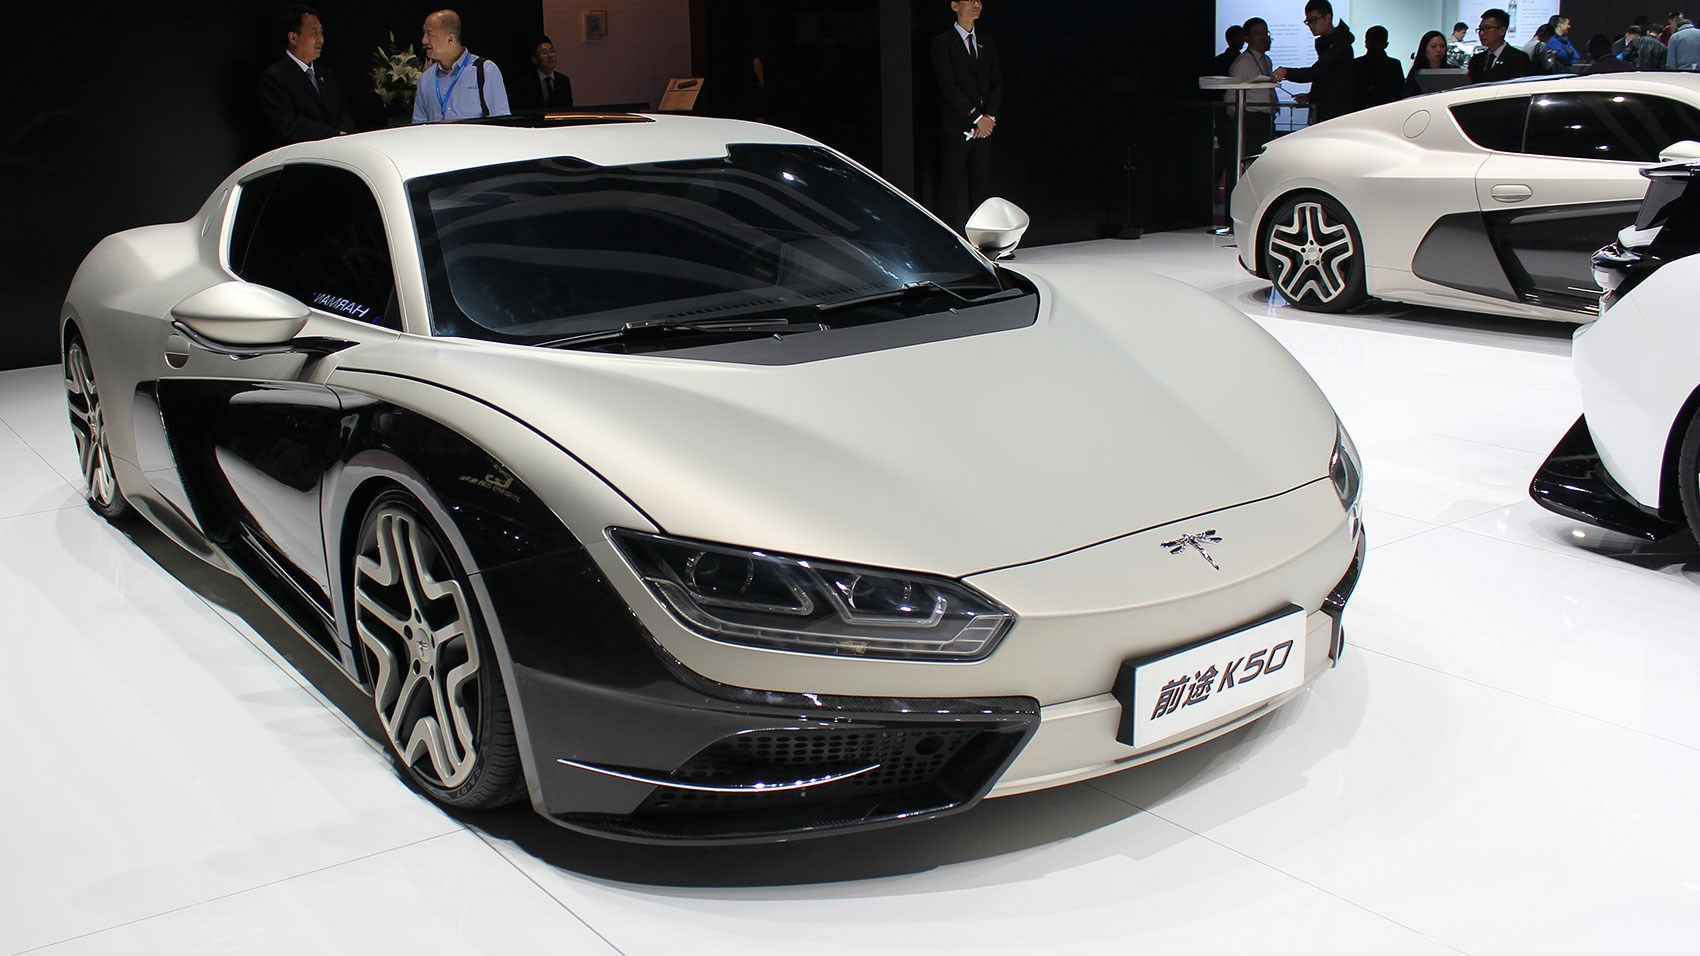 It's a knock-off! China's copycat cars at the 2015 ...